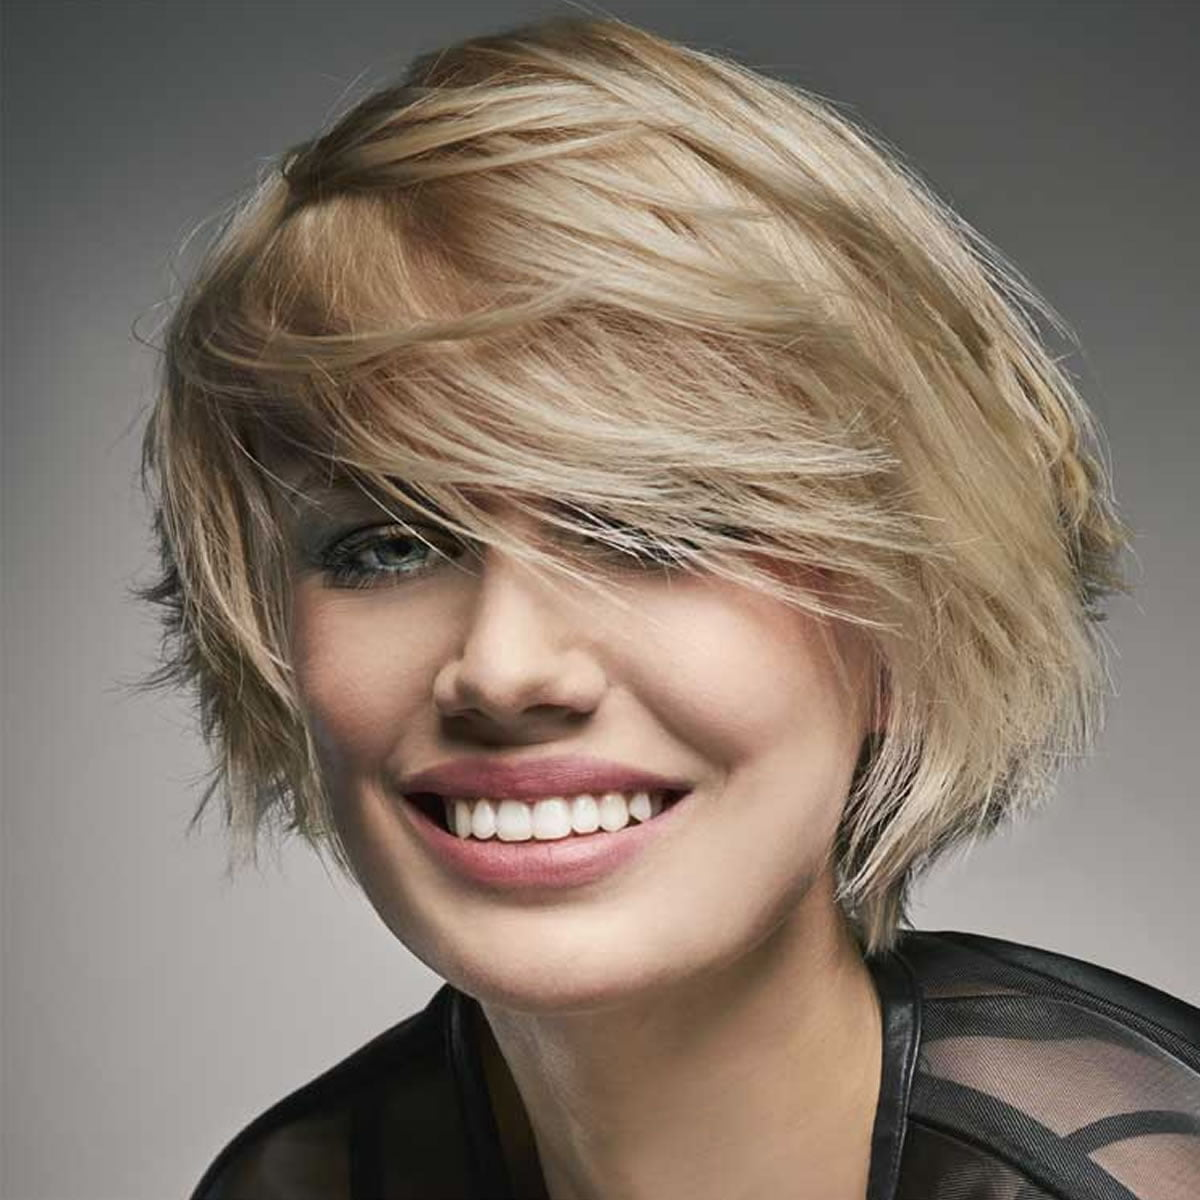 The Best 30 Short Bob Haircuts 2018 Short Hairstyles For